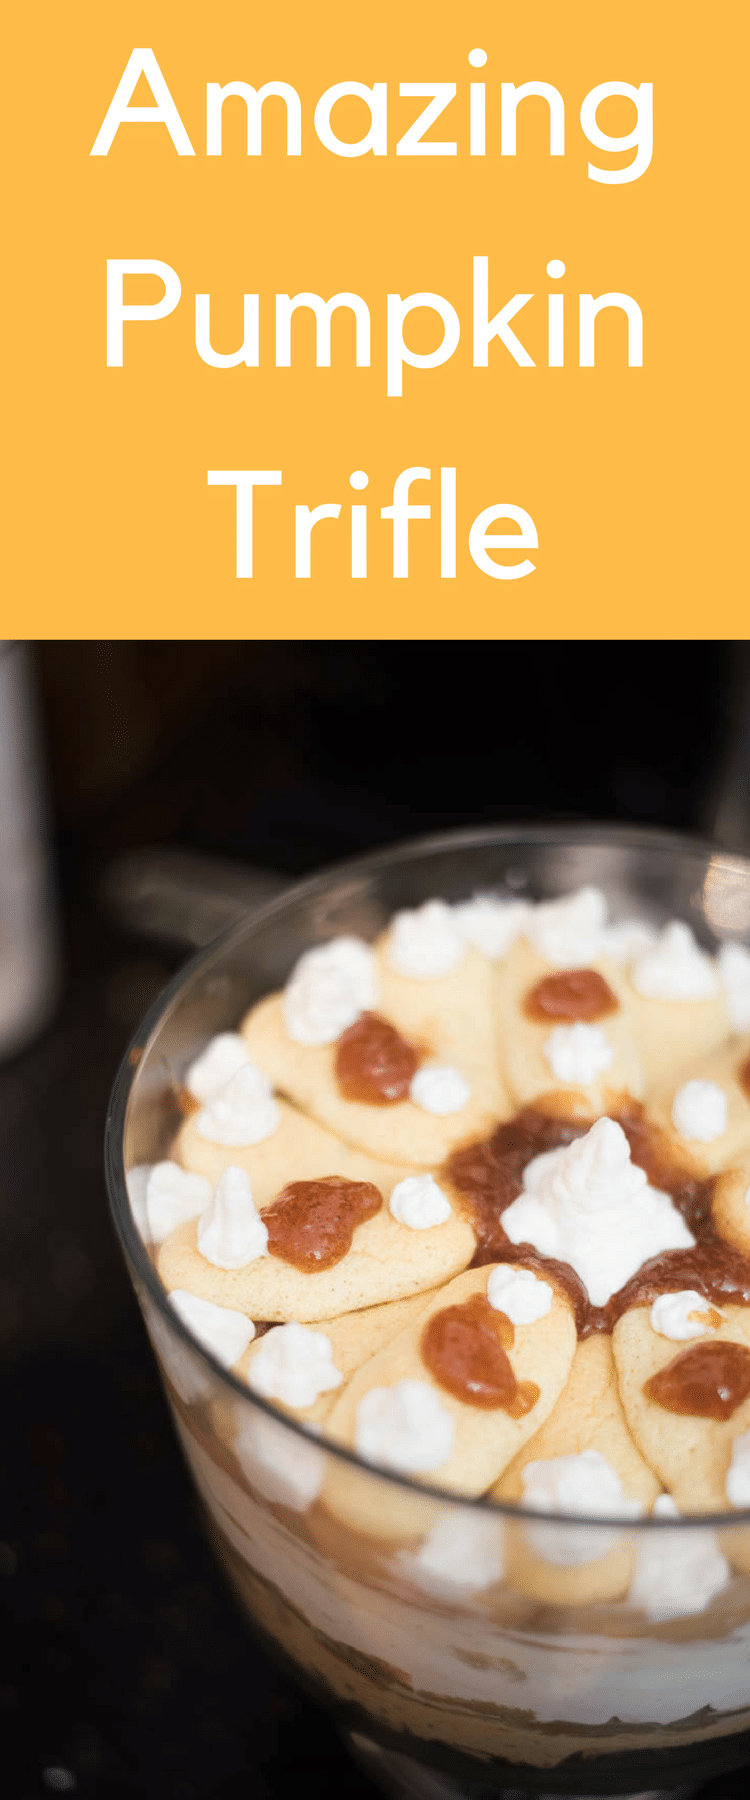 pumpkin trifle / fall trifle / caramel apple trifle / pumpkin recipe / fall dessert #fall #fallrecipes #falldessert